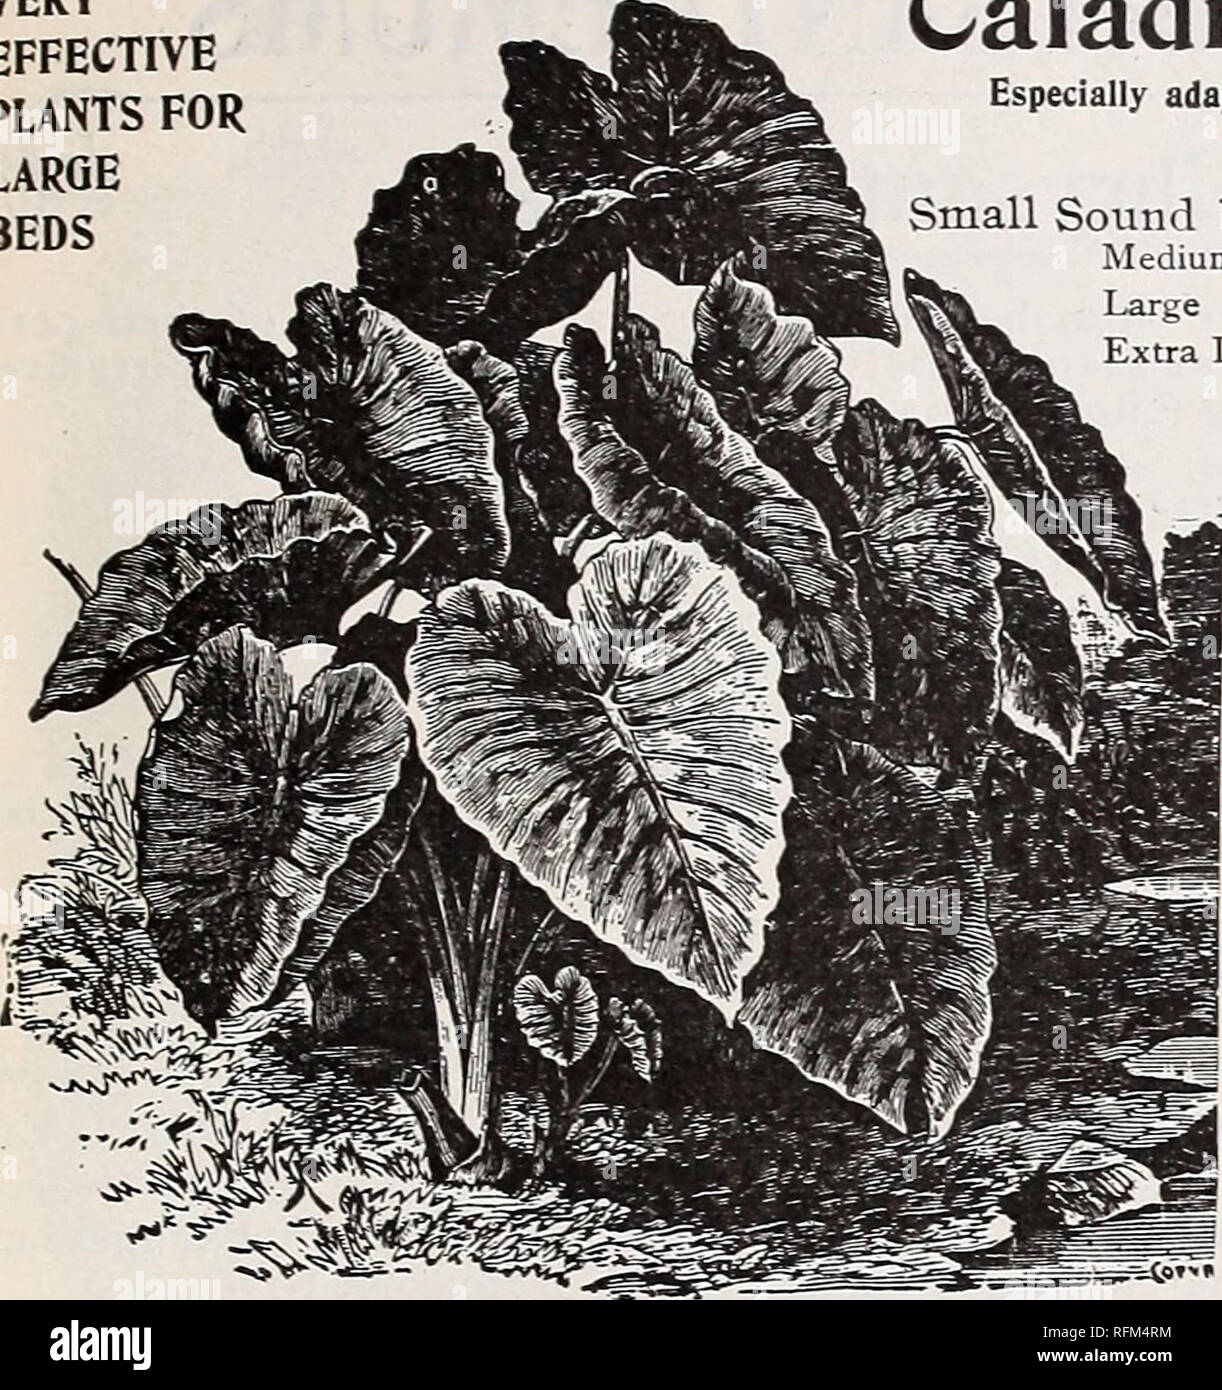 """. Michell's highest quality seeds. Nursery stock Pennsylvania Philadelphia Catalogs; Flowers Seeds Catalogs; Vegetables Seeds Catalogs; Fruit Catalogs; Agricultural implements Catalogs. [Sjo 1Q18 Market St. Philadelphia,Pa.<d